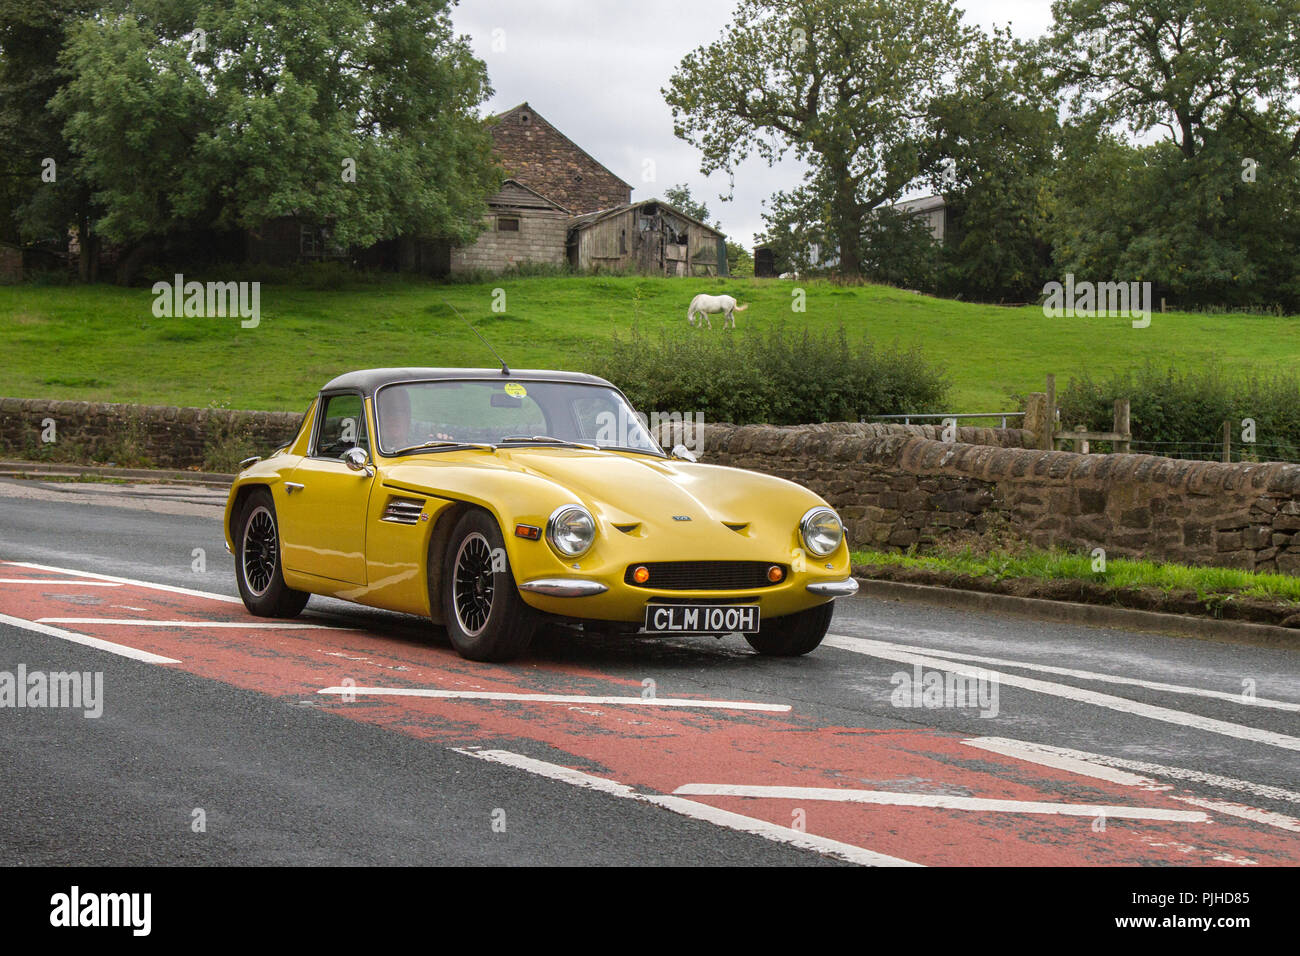 1969 yellow TVR Classic, vintage, veteran, cars of yesteryear, restored collectibles at Hoghton Tower Car Rally, UK - Stock Image